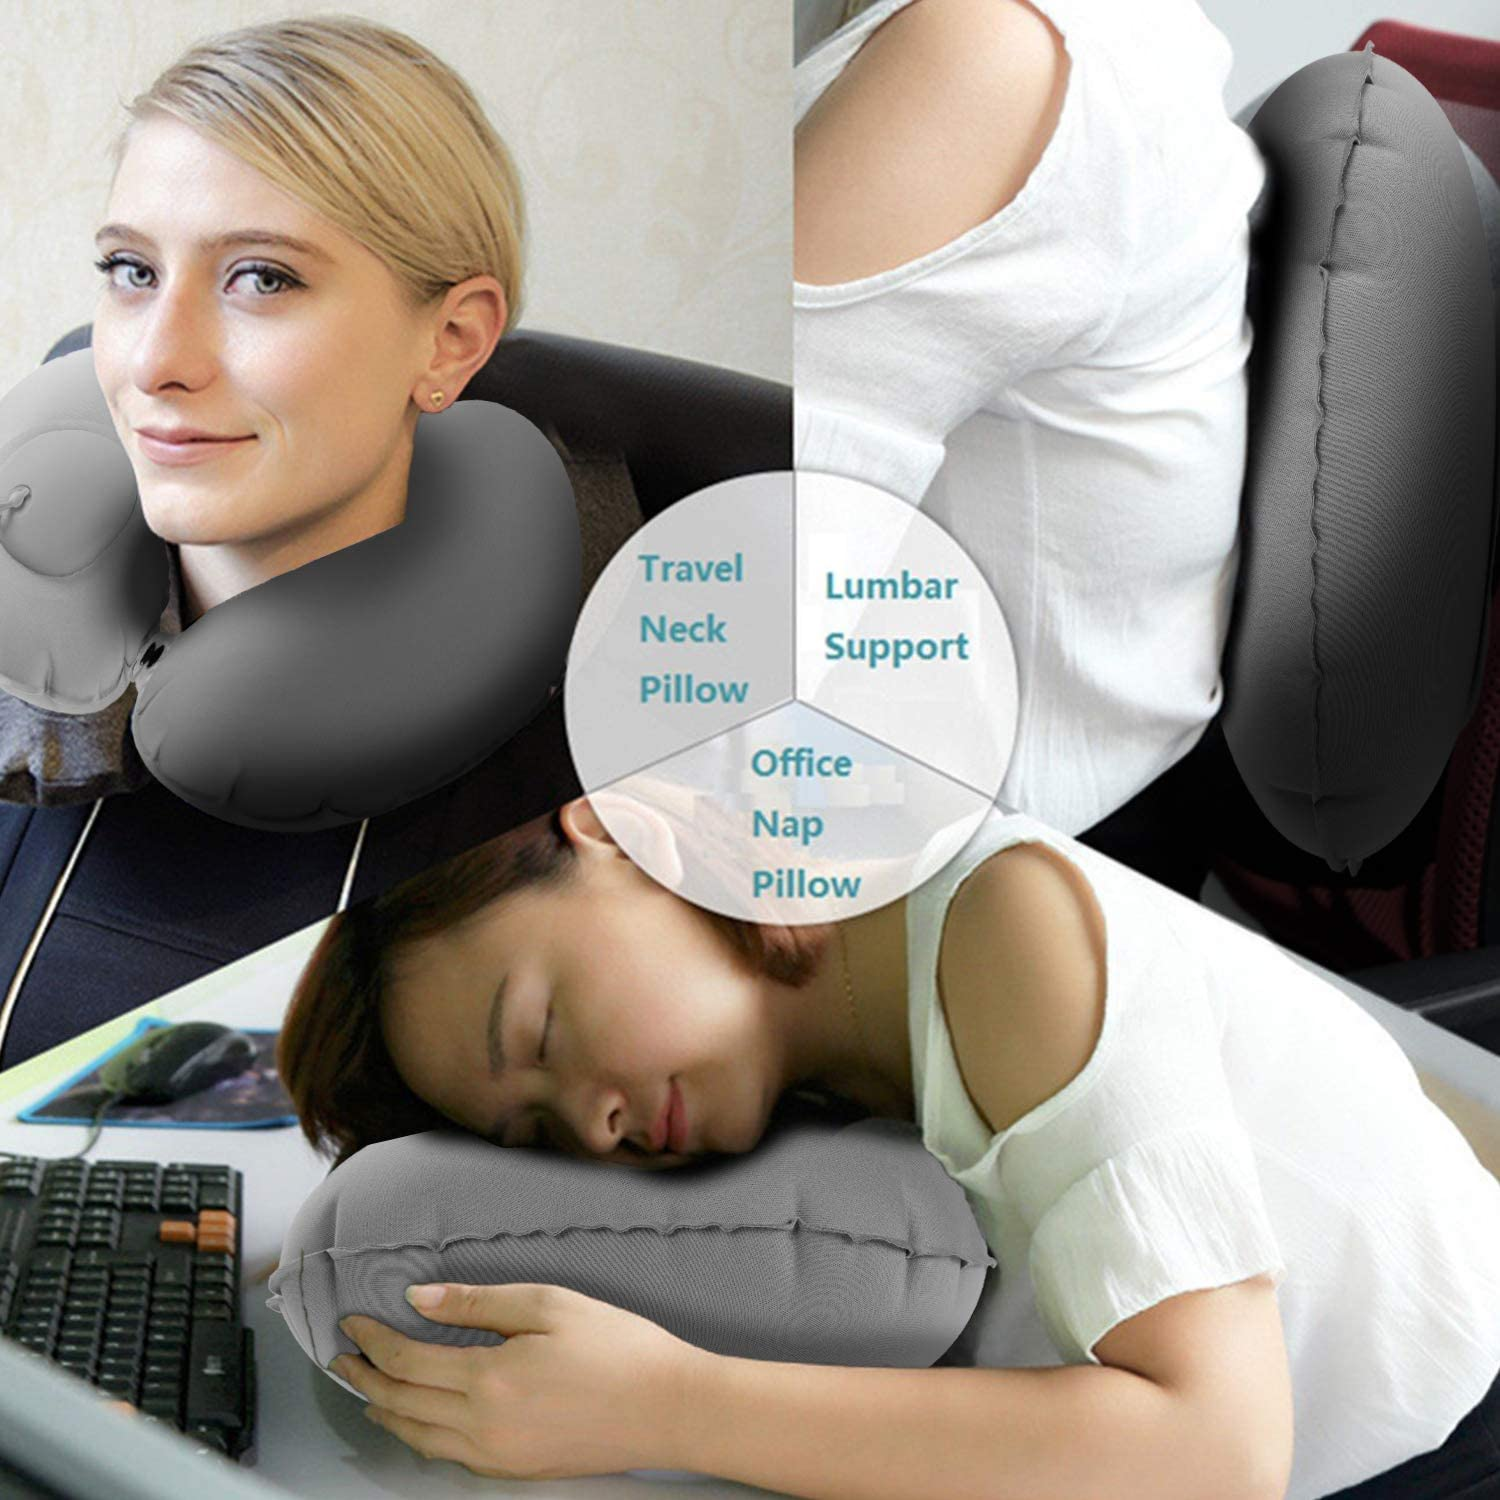 Air Neck Pillow Lightweight Stay Cool Fabric Self Pump Up Without Blowing Head and Neck Support in Airplane Travel U-1Pack-Press Type-Blue Inflatable Travel Pillow